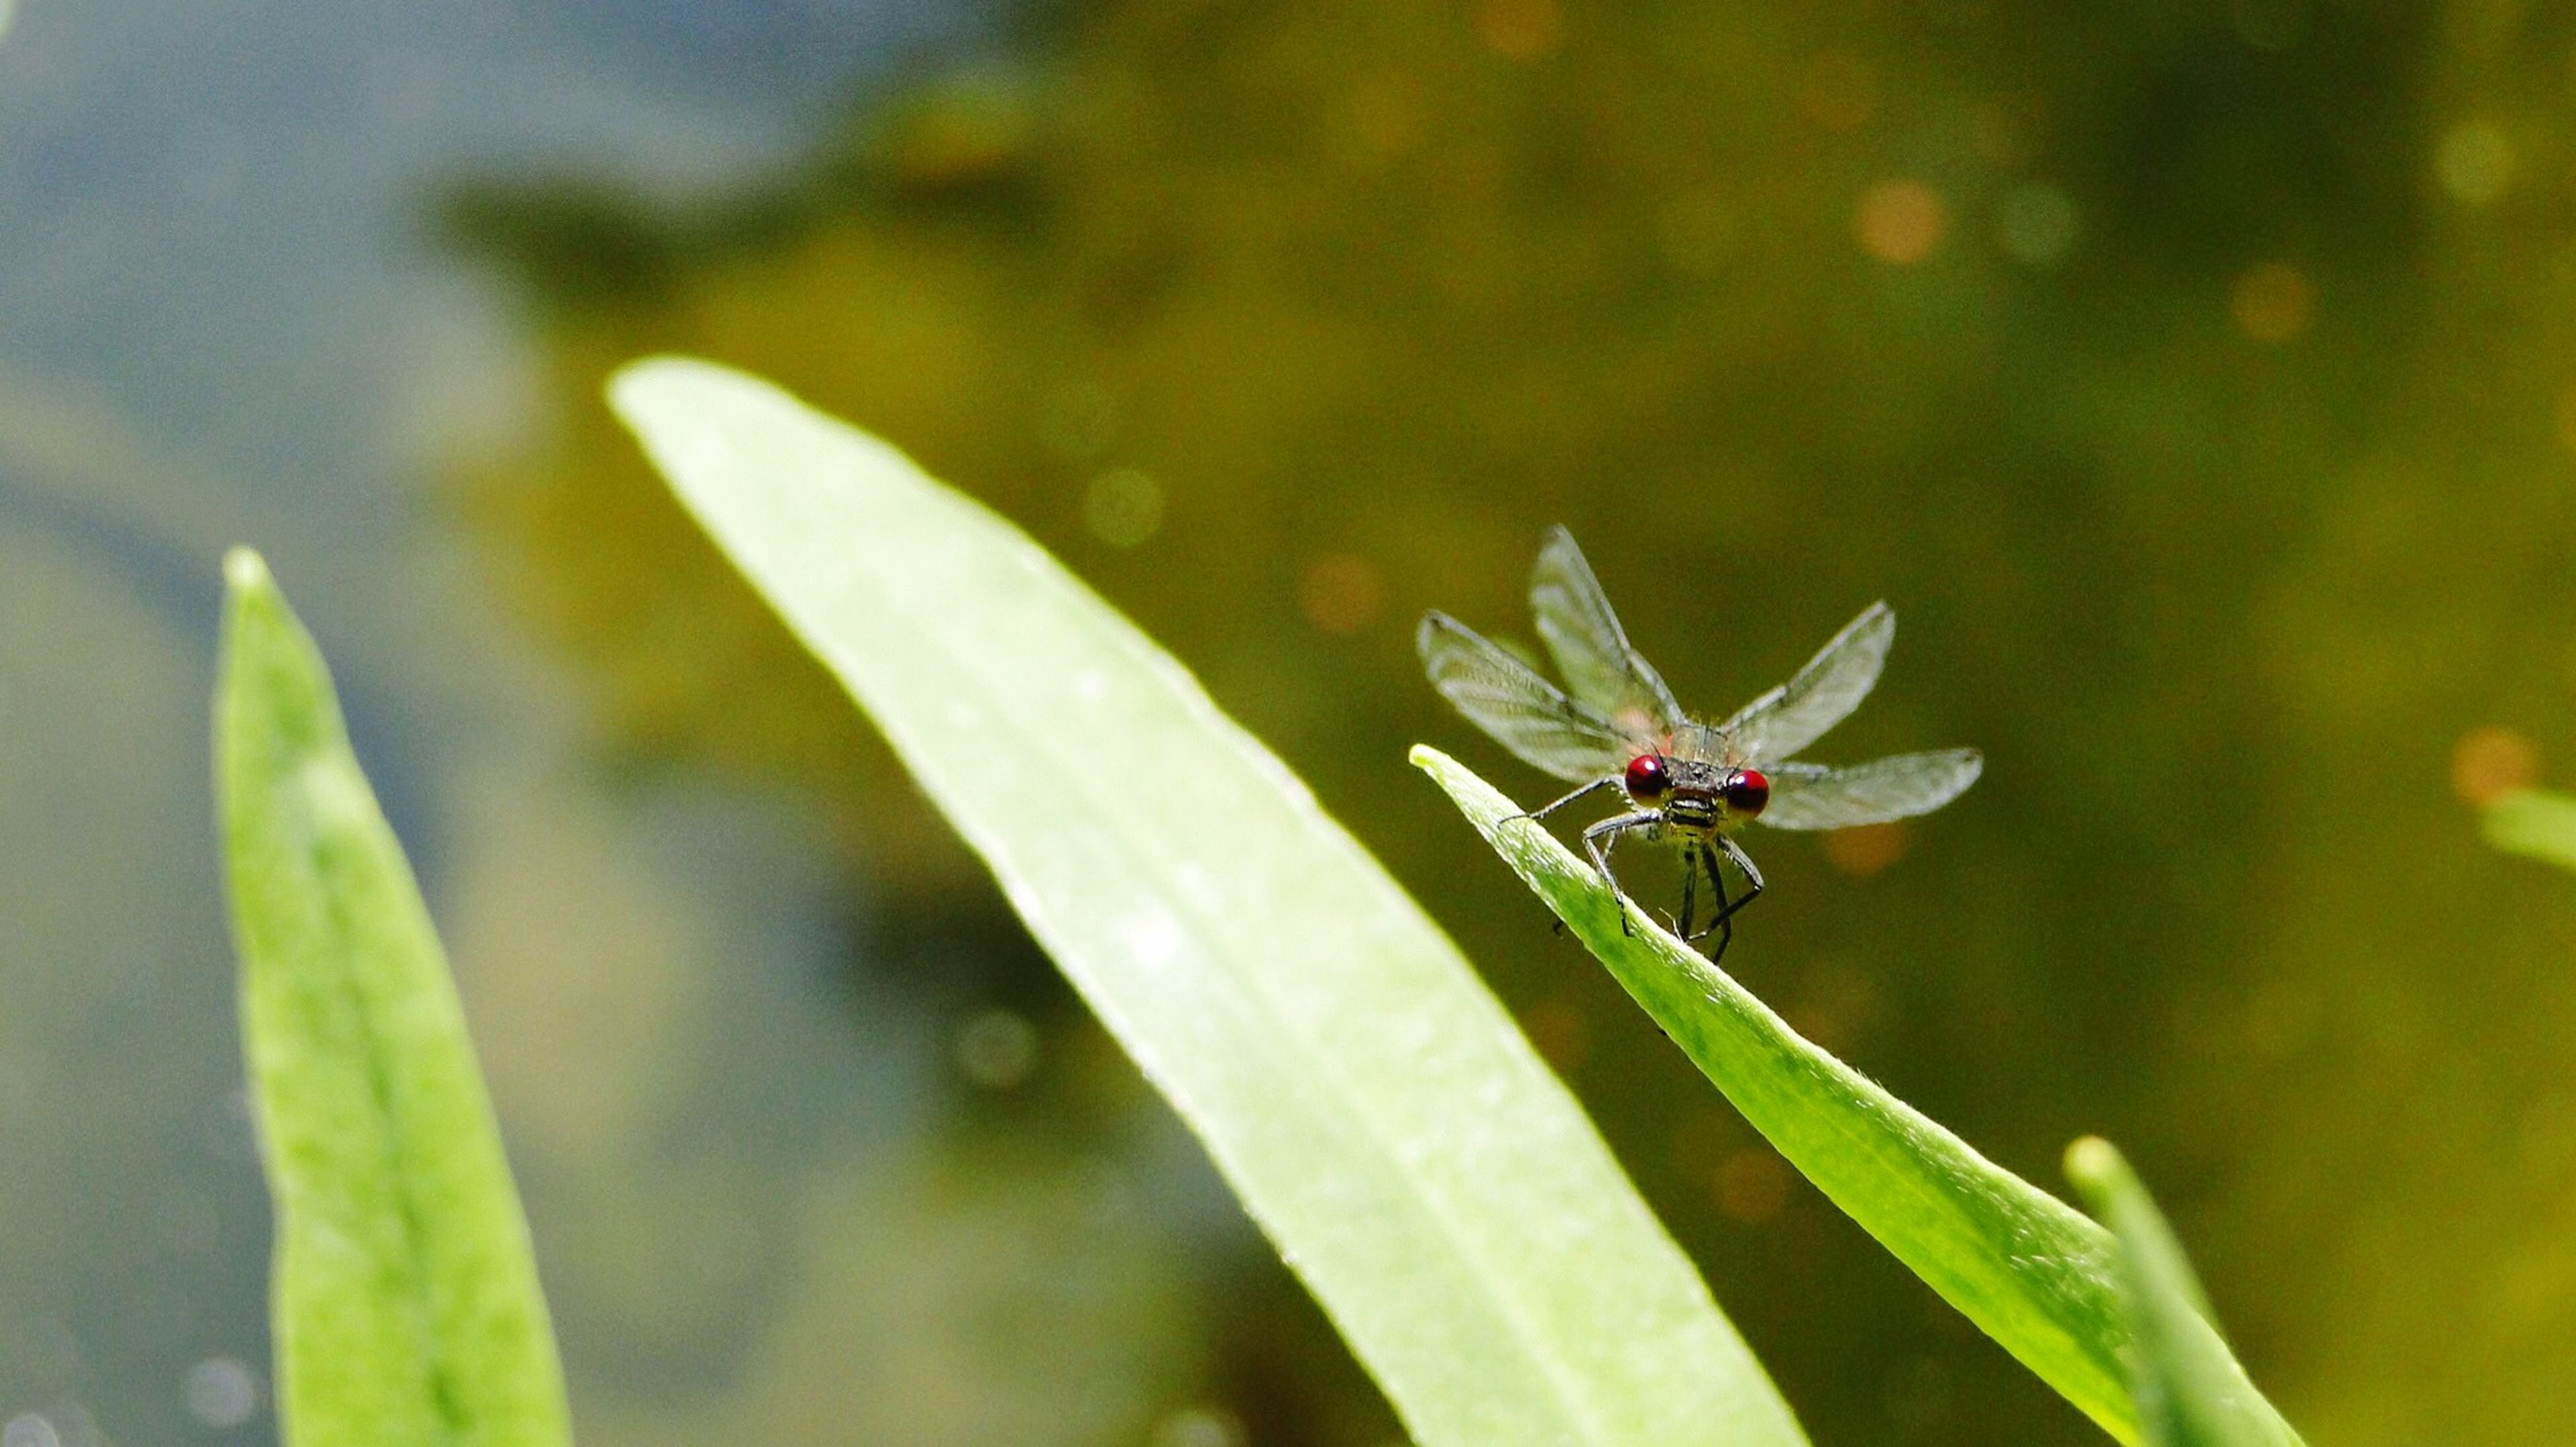 insect, one animal, animals in the wild, animal themes, wildlife, close-up, focus on foreground, plant, leaf, green color, nature, selective focus, day, growth, dragonfly, outdoors, no people, flower, beauty in nature, animal wing